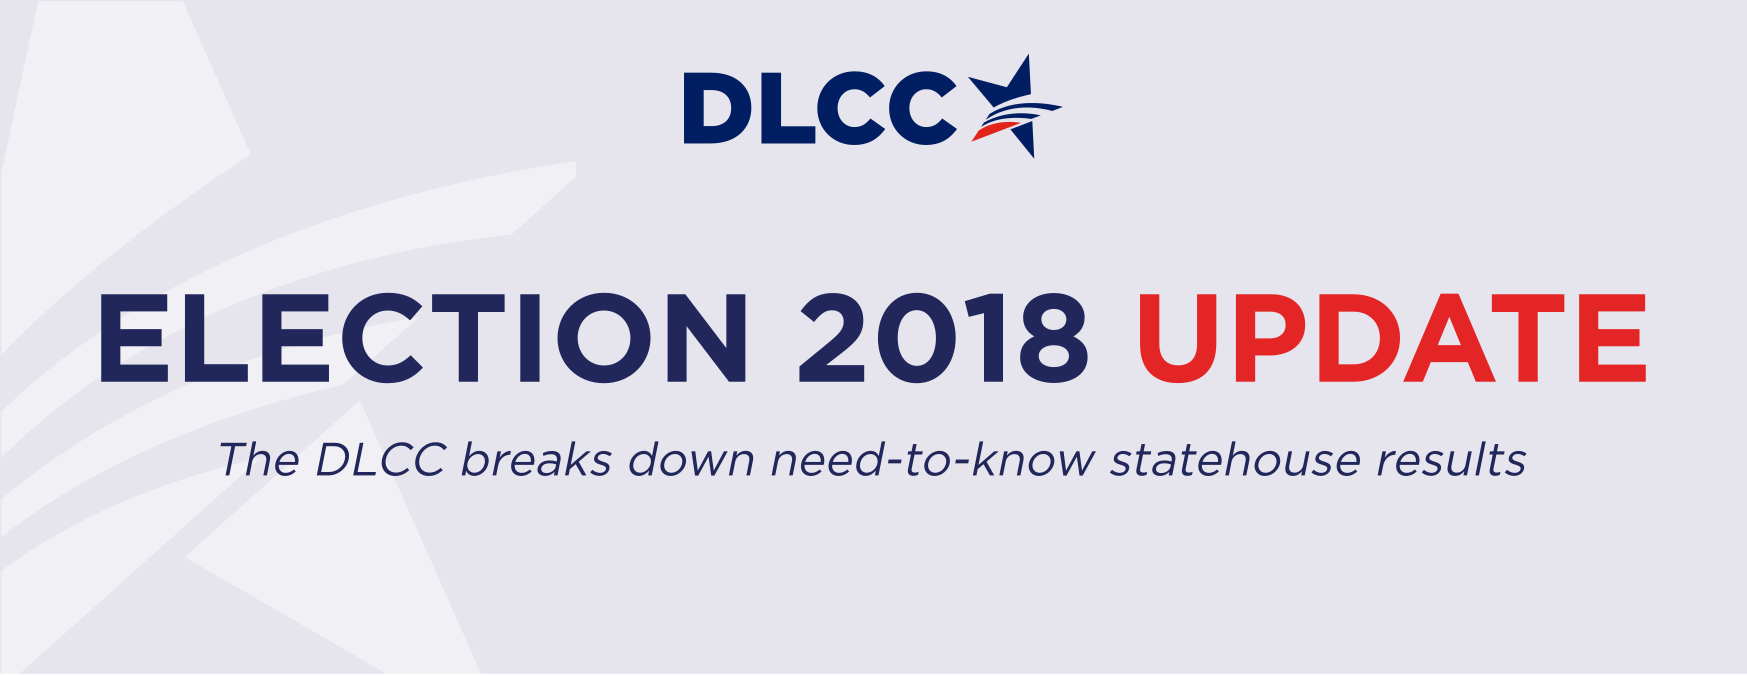 DLCC Election Update (as of 11/28/18 @ 8AM).